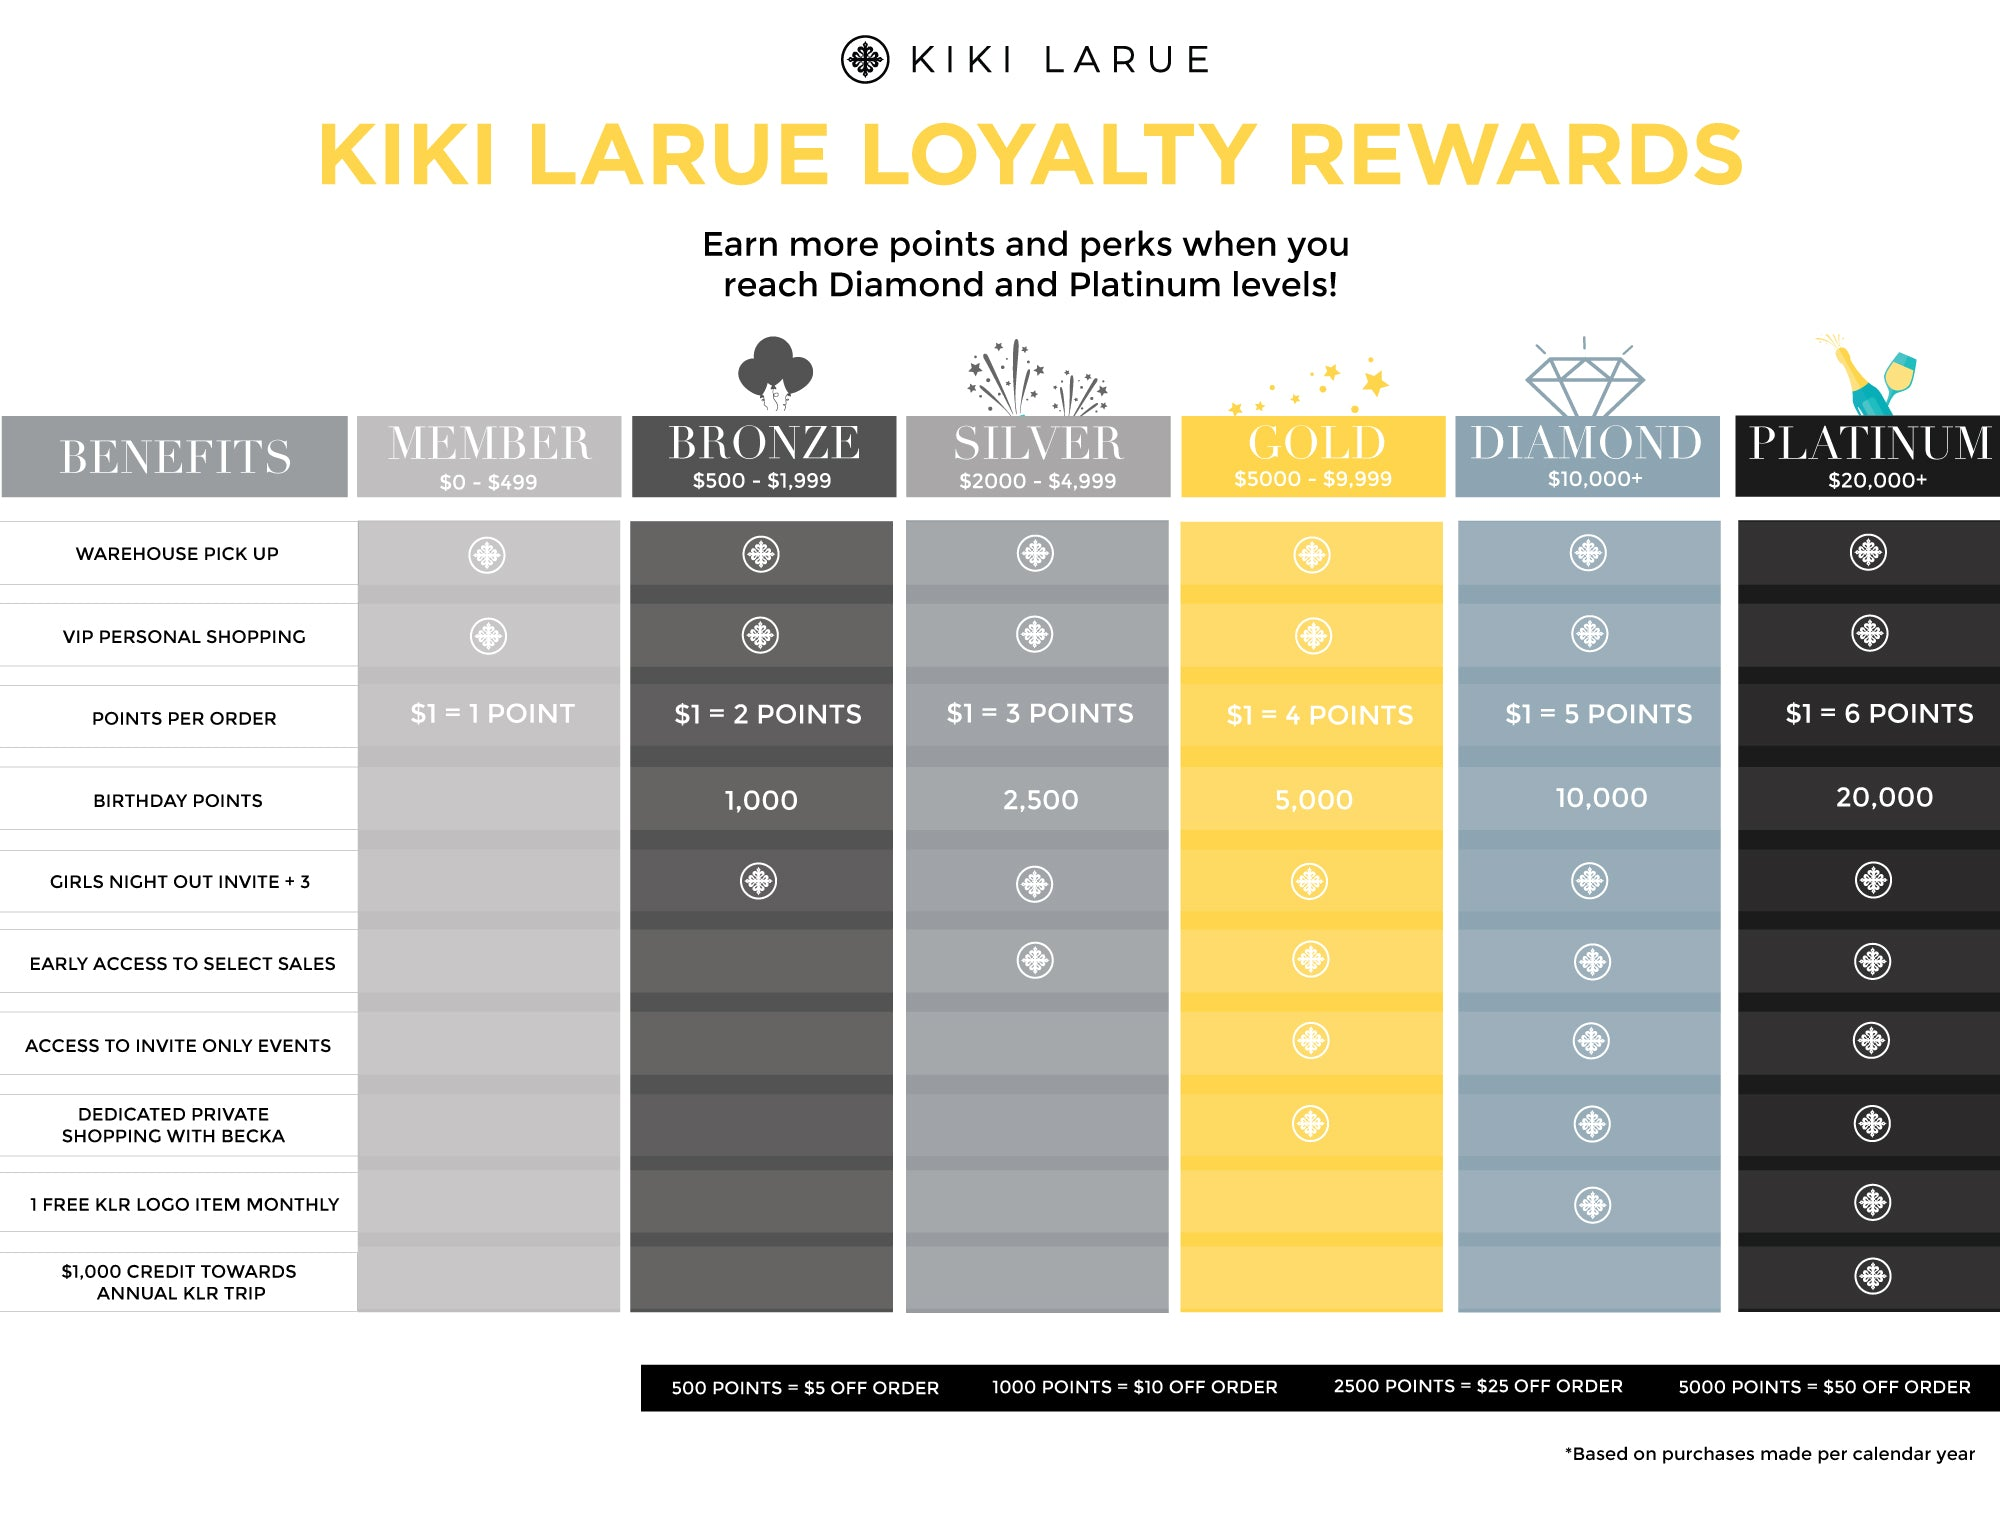 KLR Loyalty Rewards